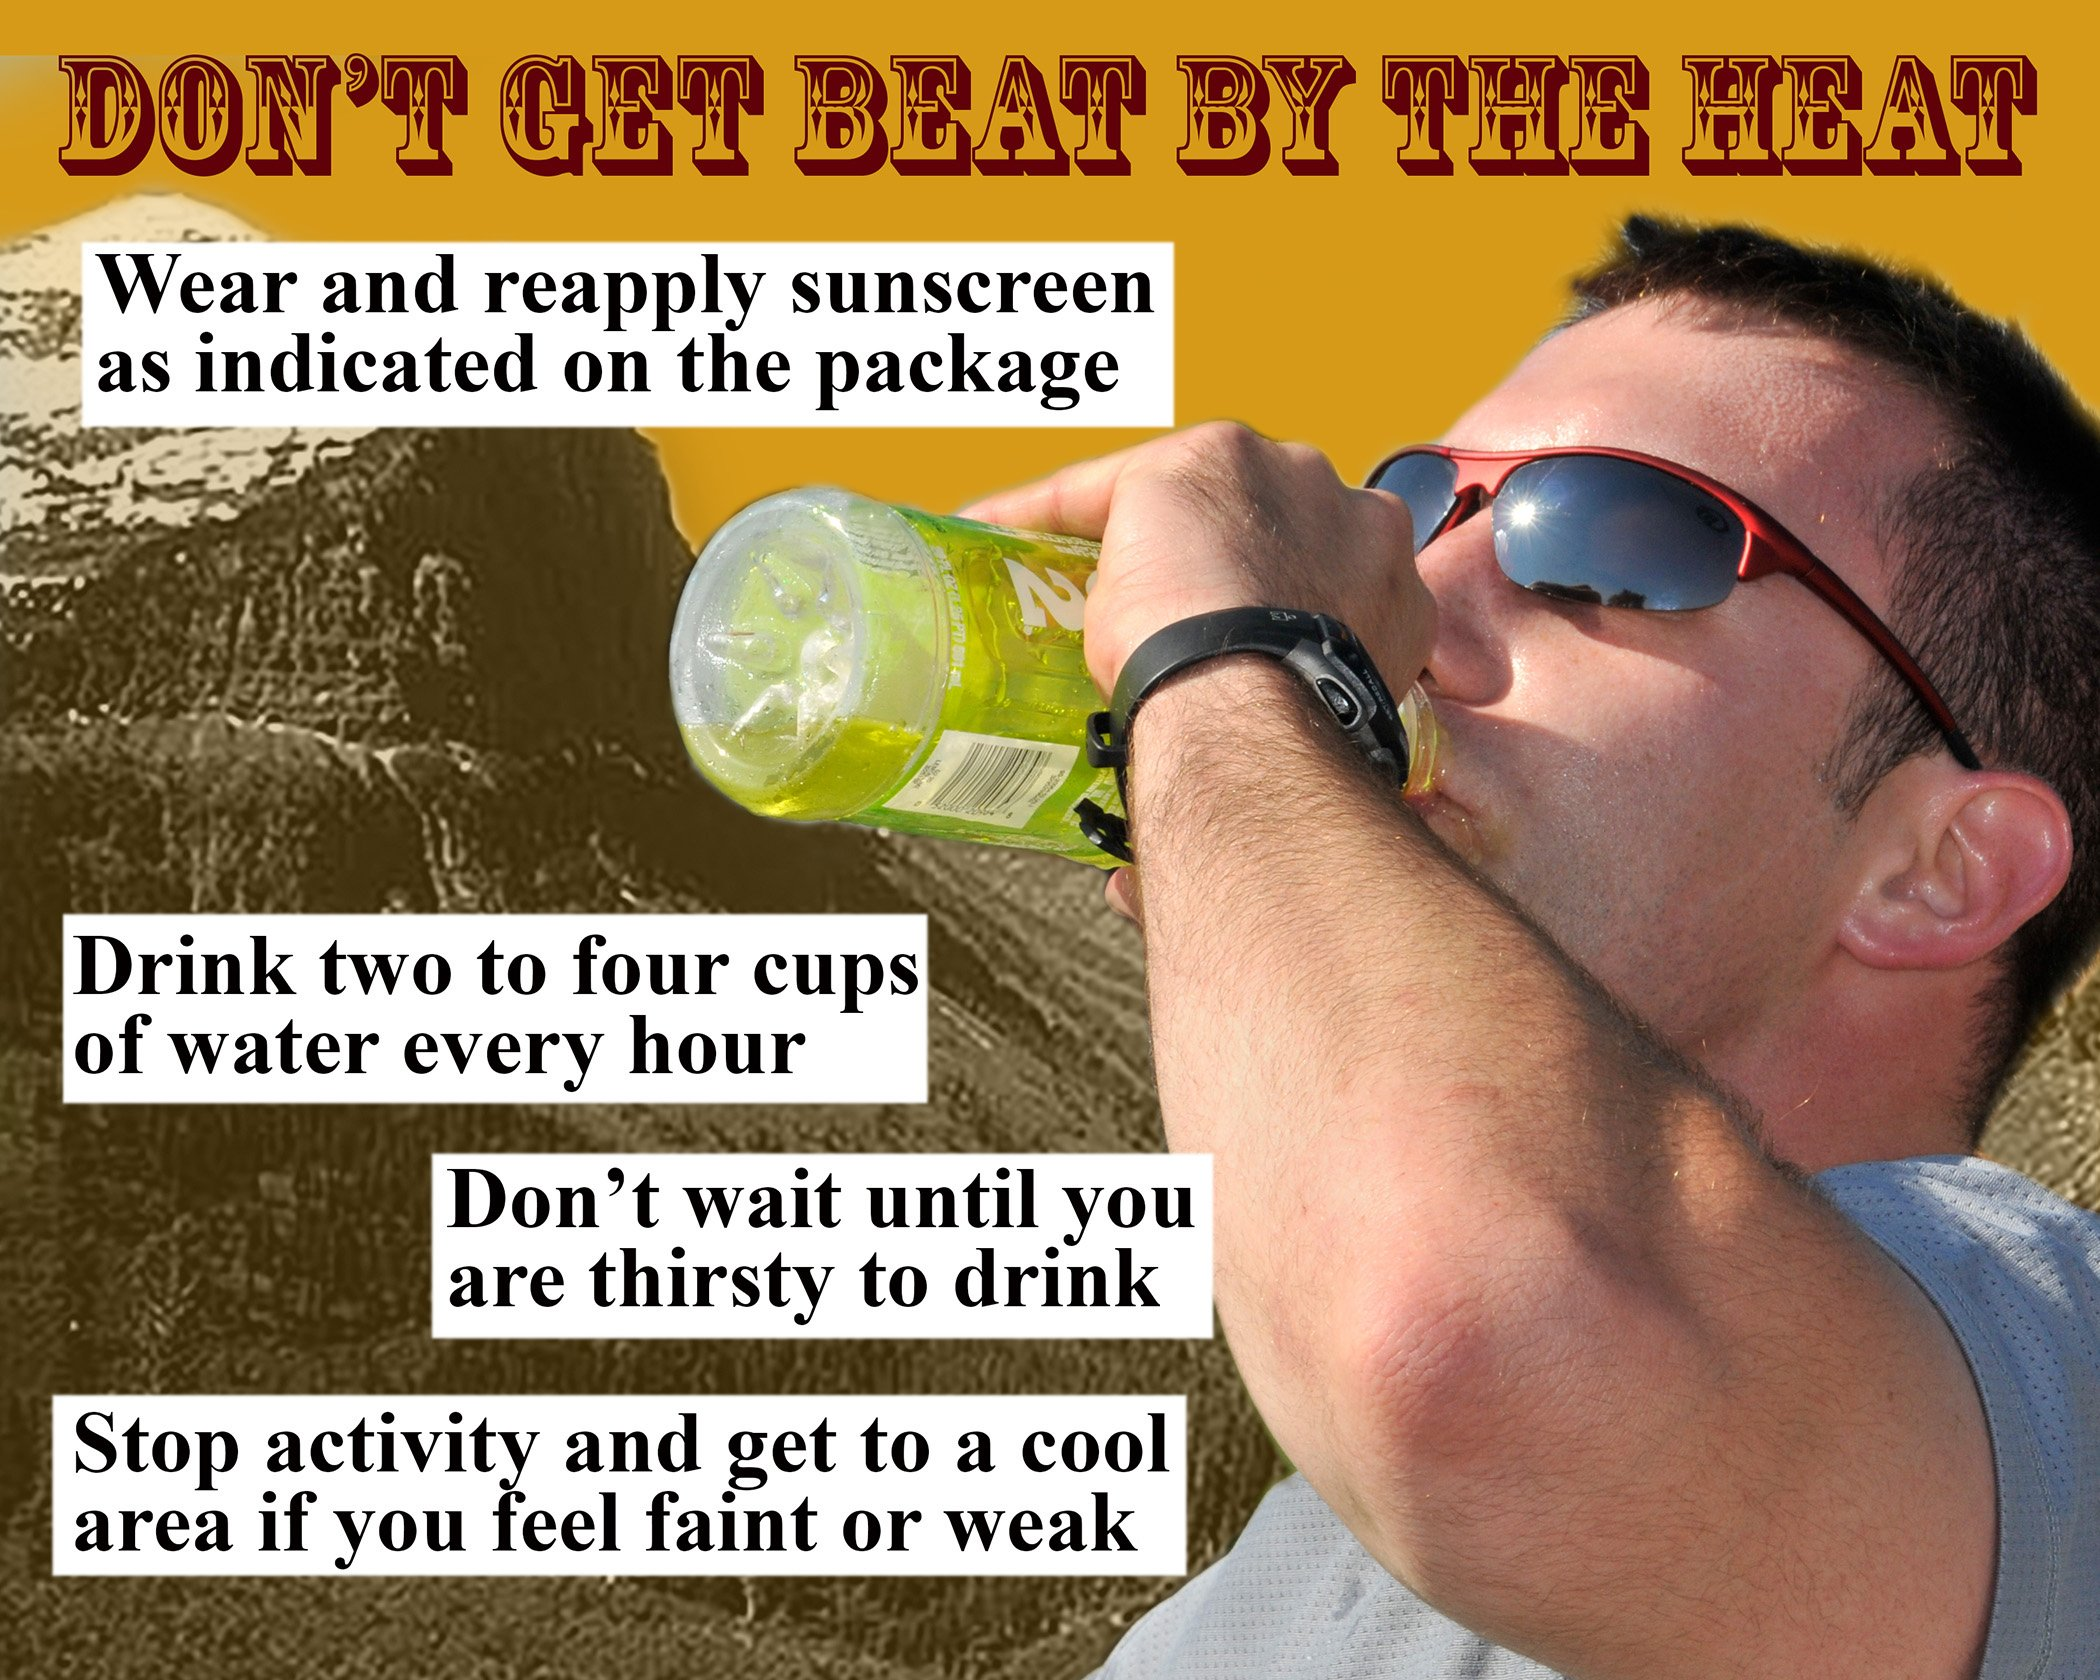 beat the heat rules